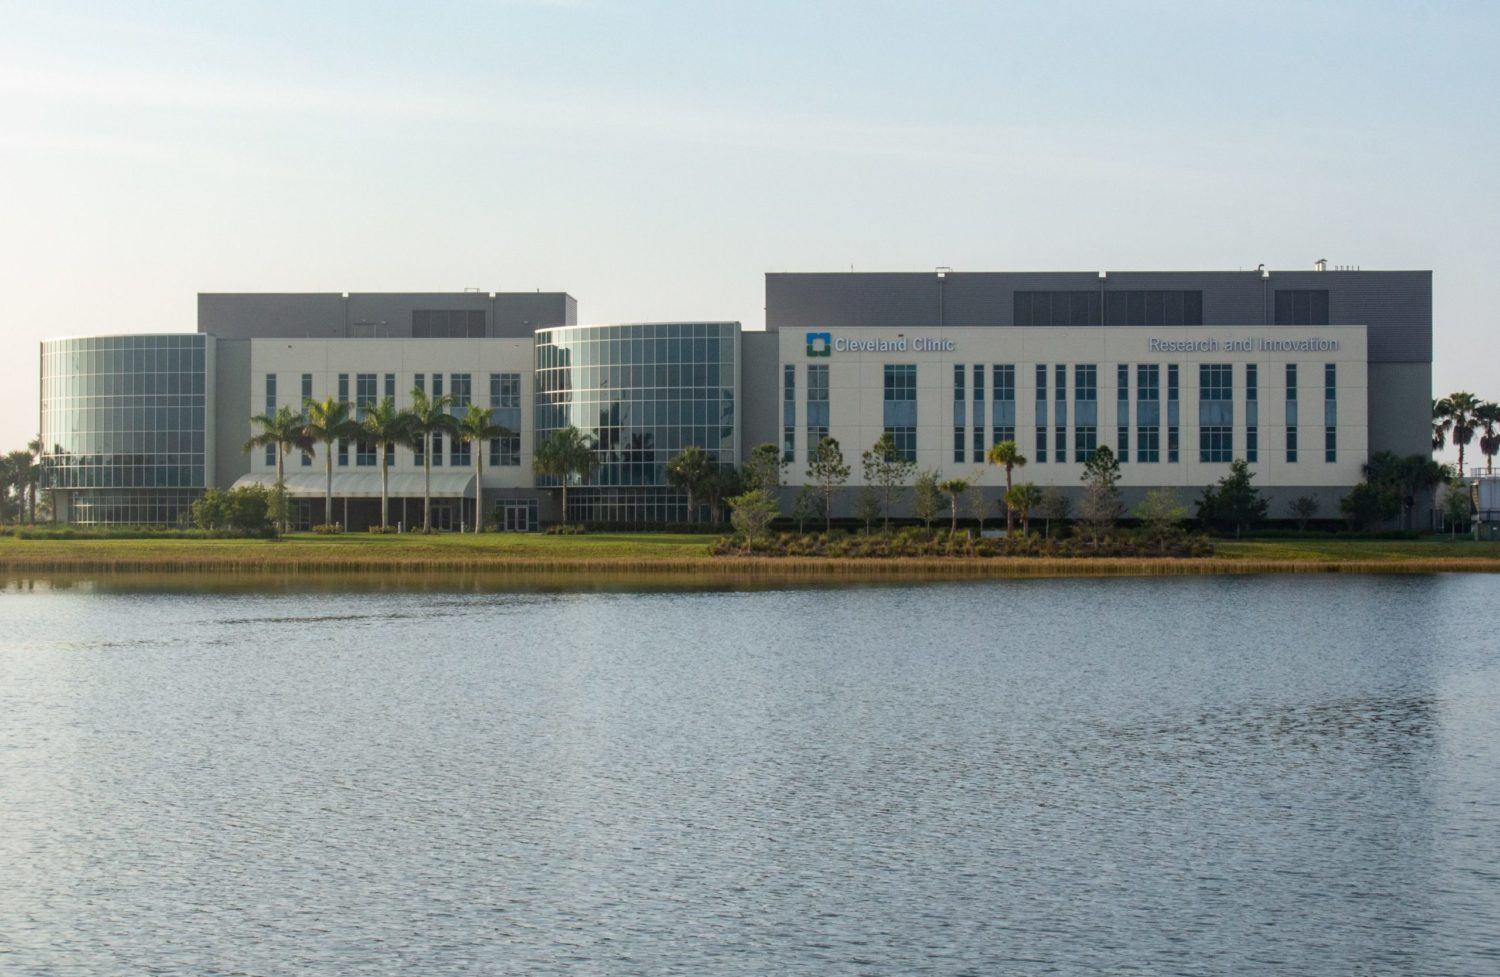 Cleveland Clinic Florida Opens Florida Research and Innovation Center